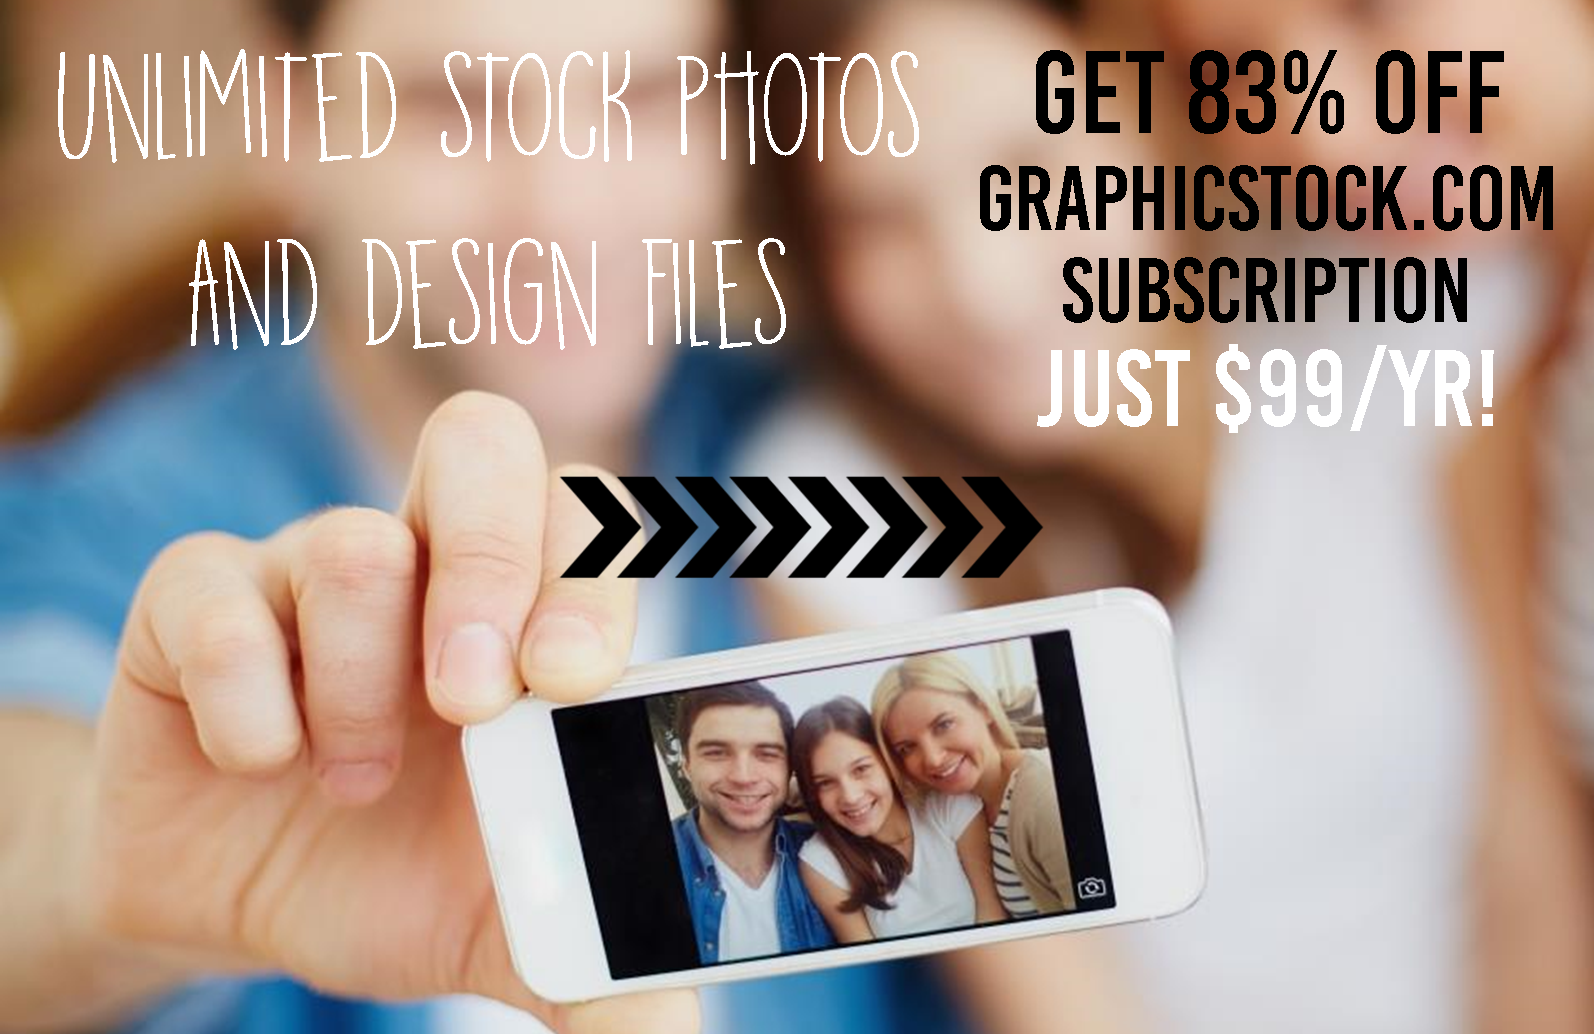 12 Months Unlimited Stock Photos